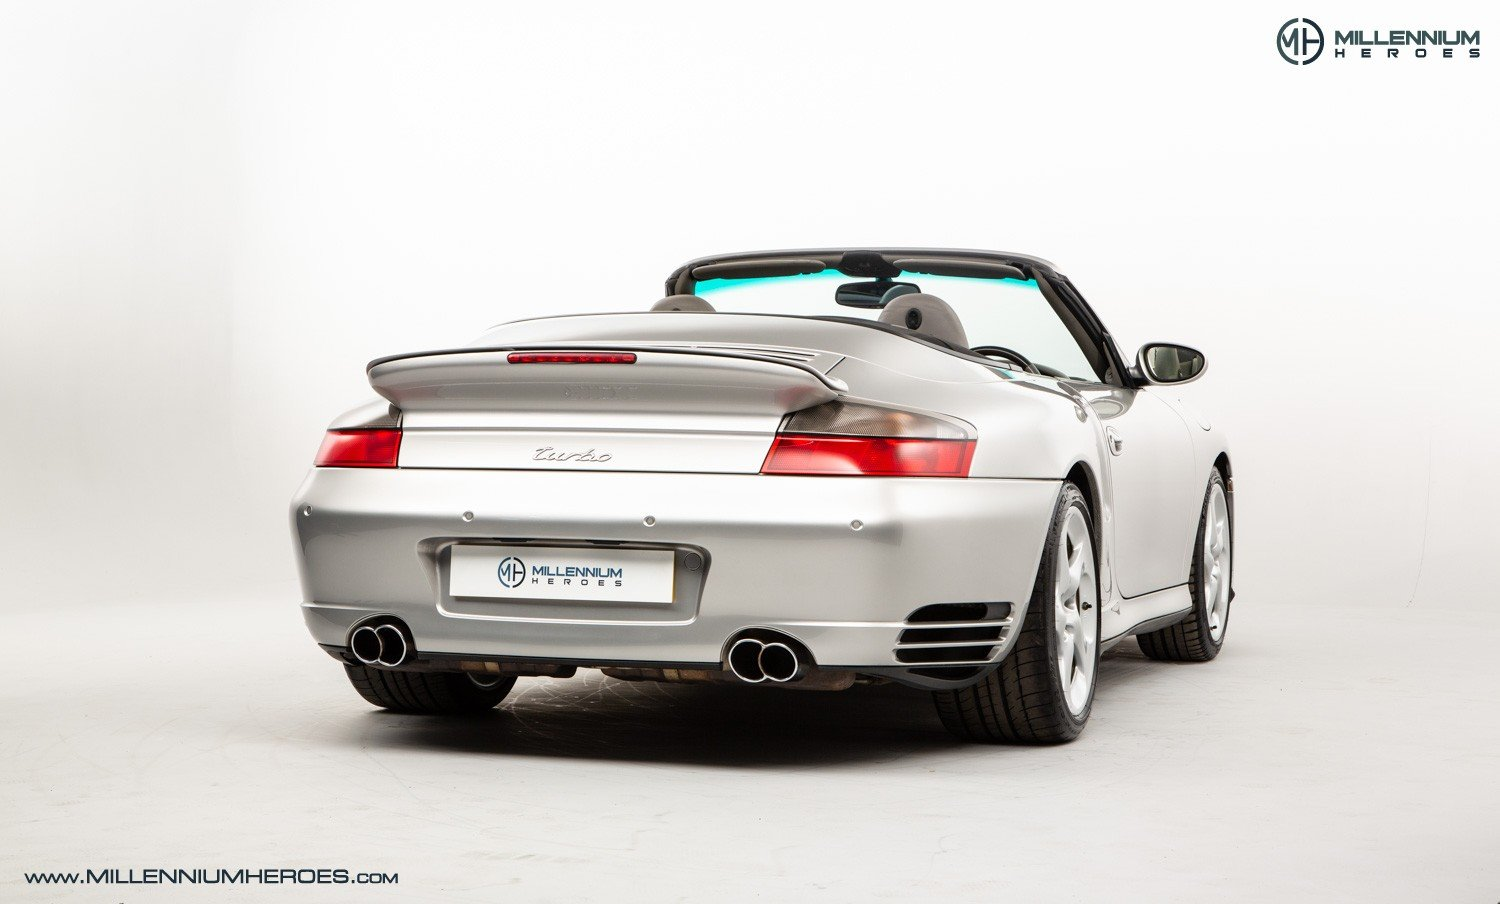 2004 PORSCHE 996 TURBO // X50 PACK // MANUAL // 19K MILES For Sale (picture 3 of 6)